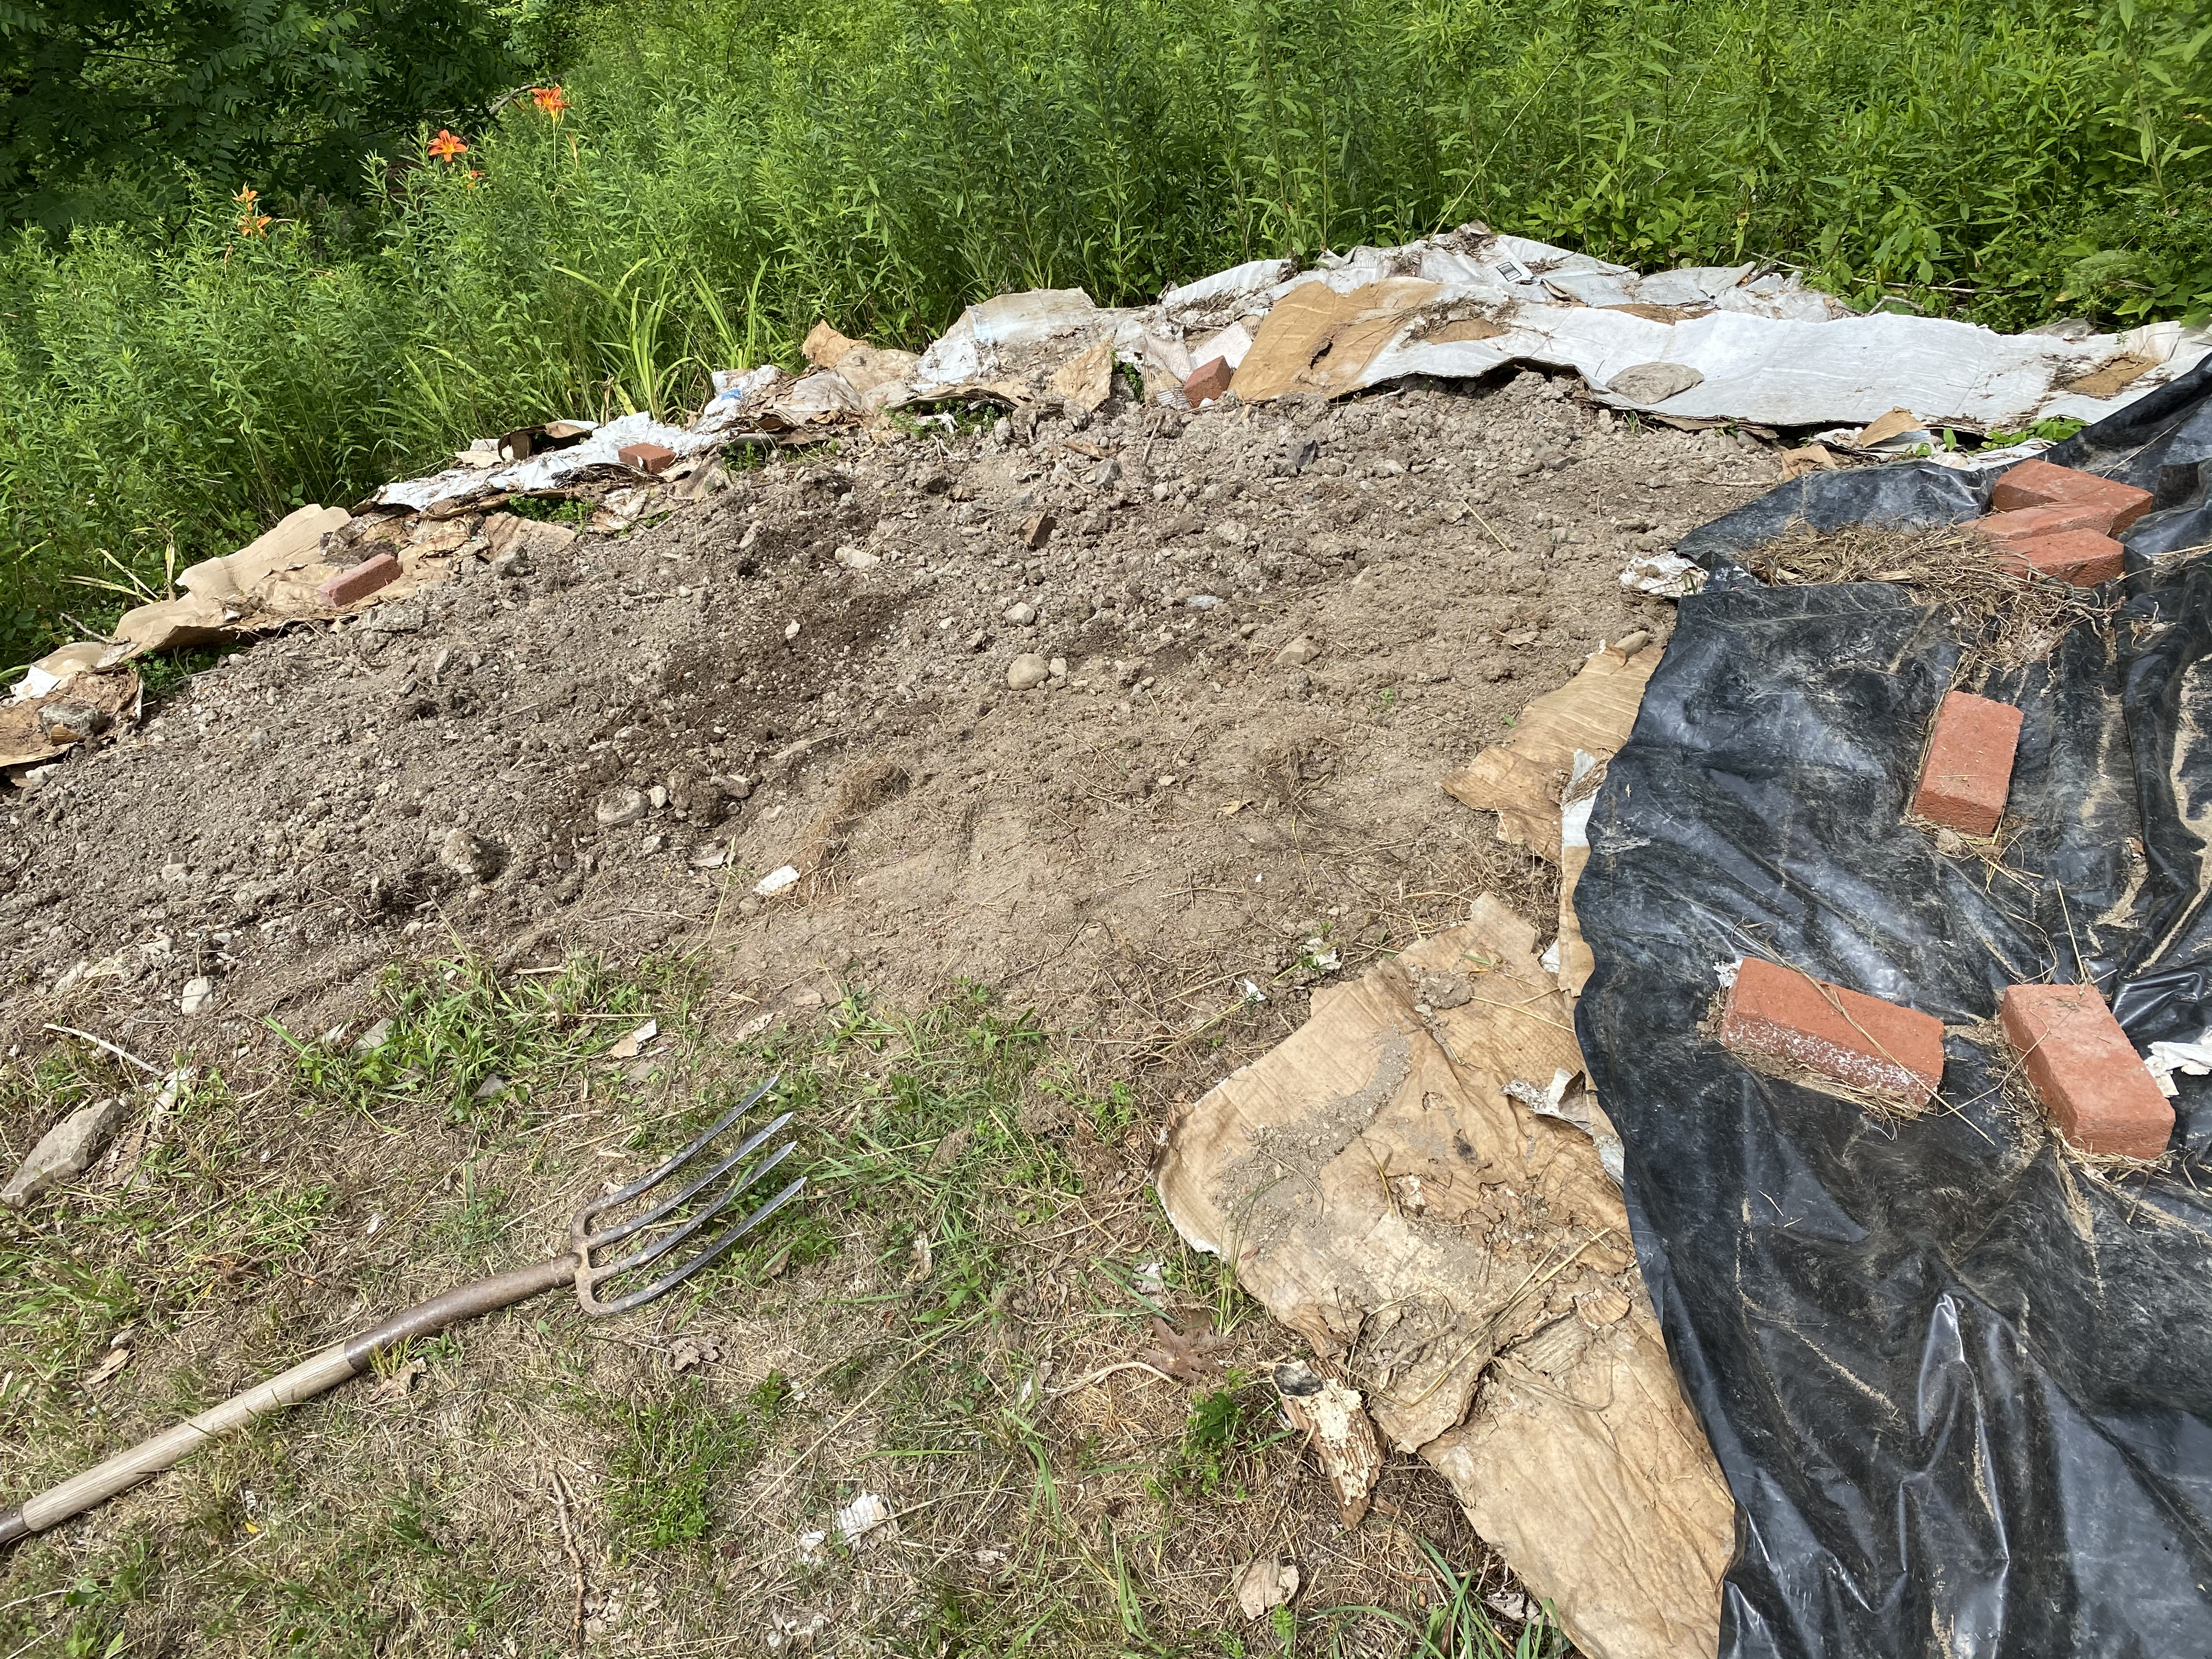 bare soil to be planted into, surrounded by covered soil for future plantings